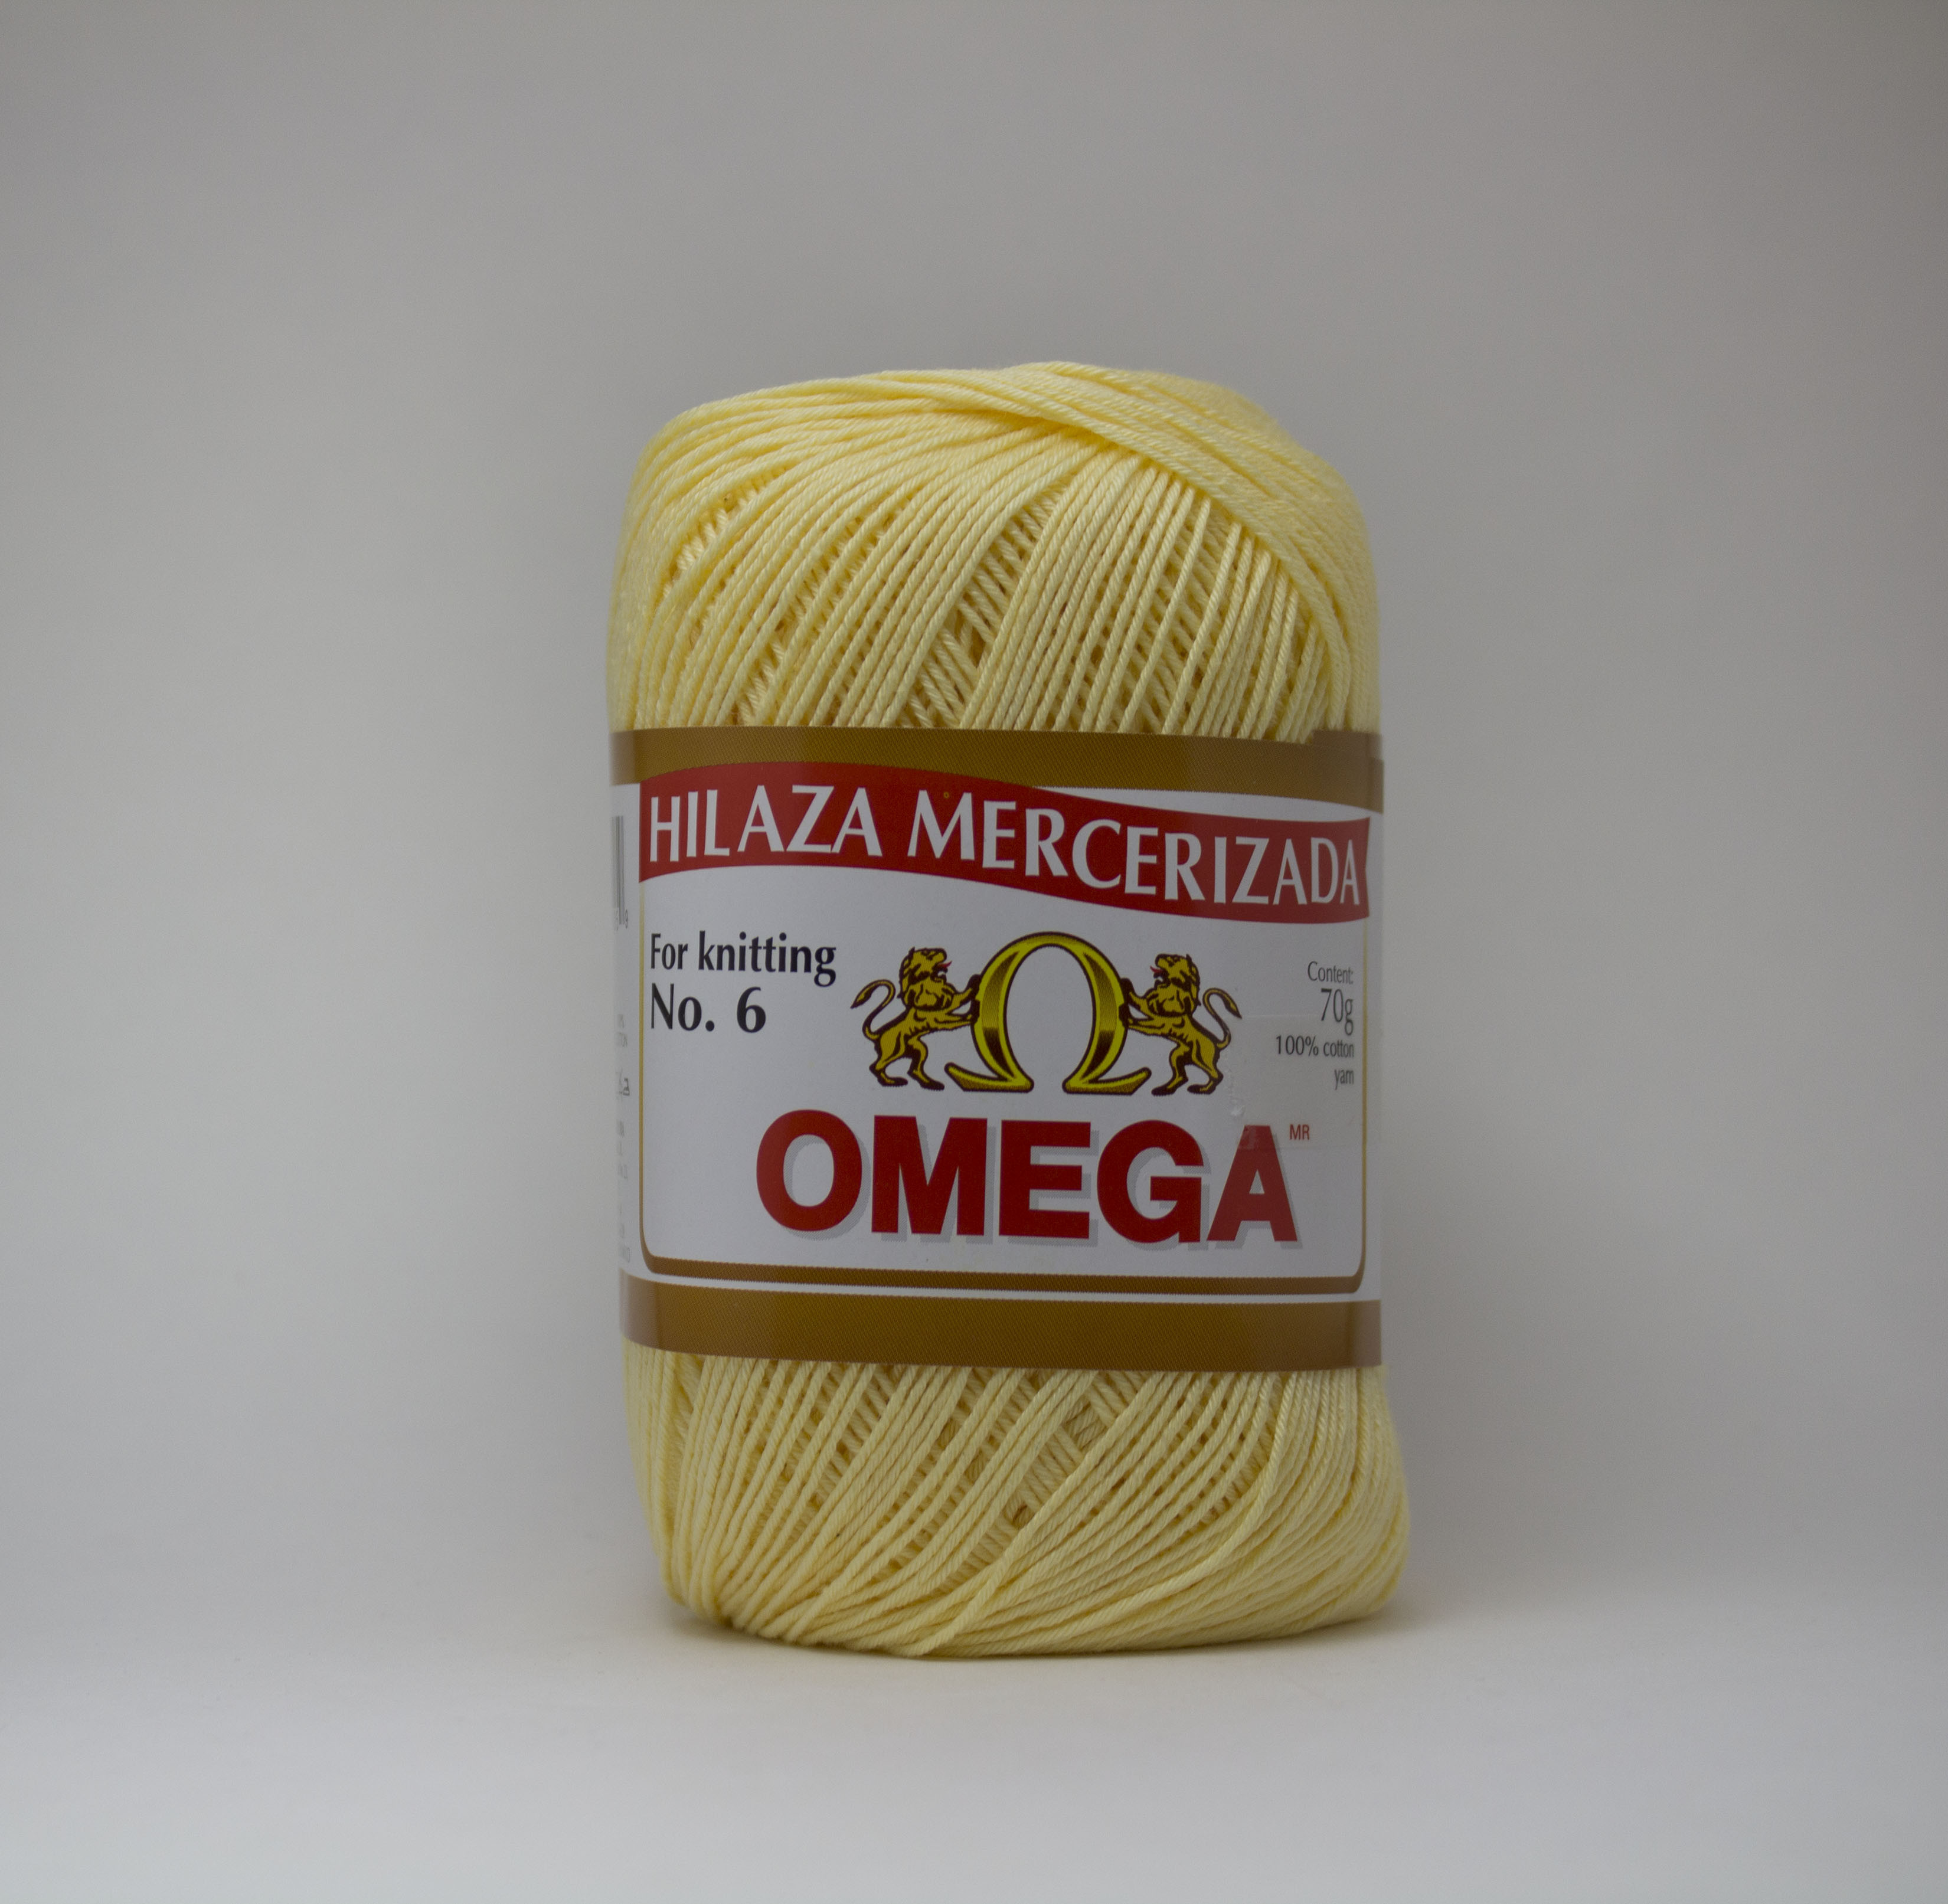 Omega Yarn Lovely Hilaza Omega Yarns 6 – Milartmarroquin Of Awesome 49 Pictures Omega Yarn